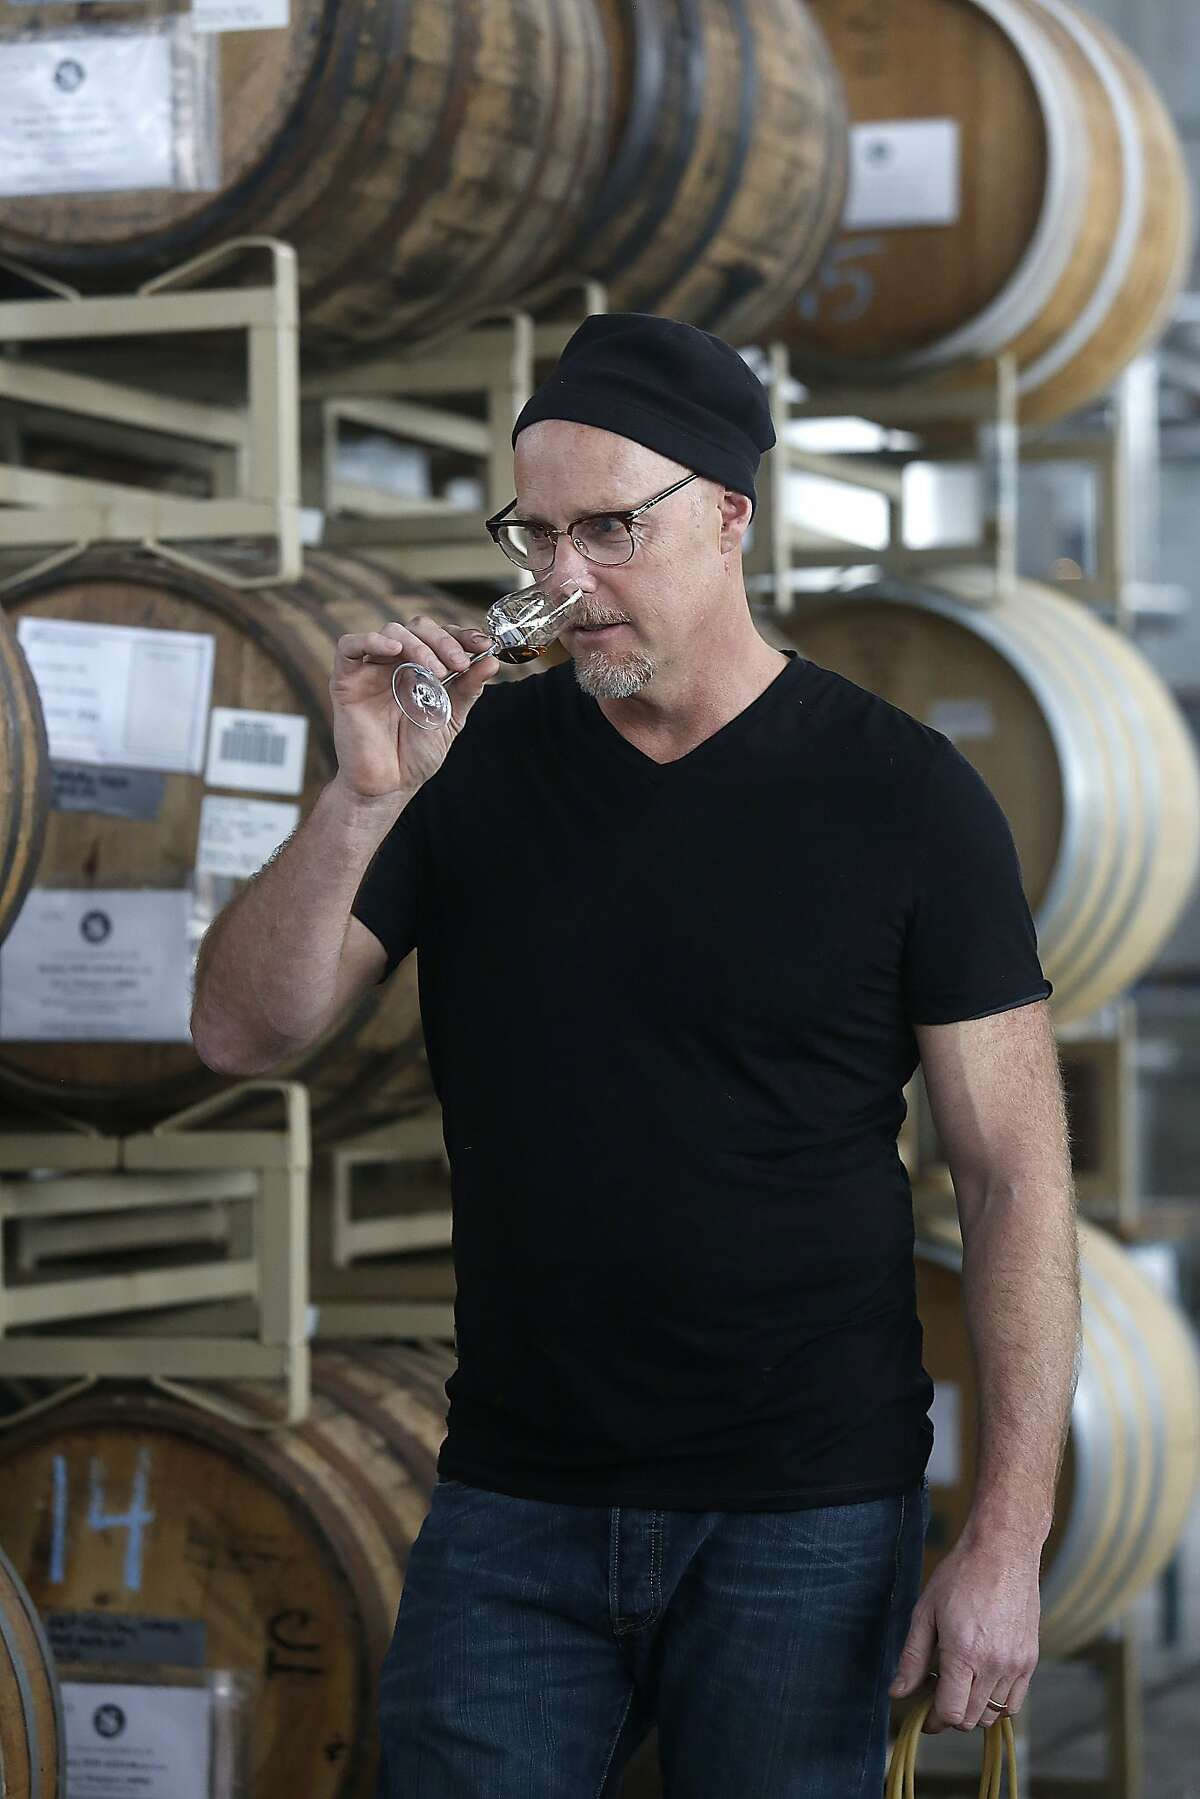 Master distiller Lance Winters checks a few spirits in barrels at St. George Spirits in Alameda, California, on Thursday, January 28, 2016.